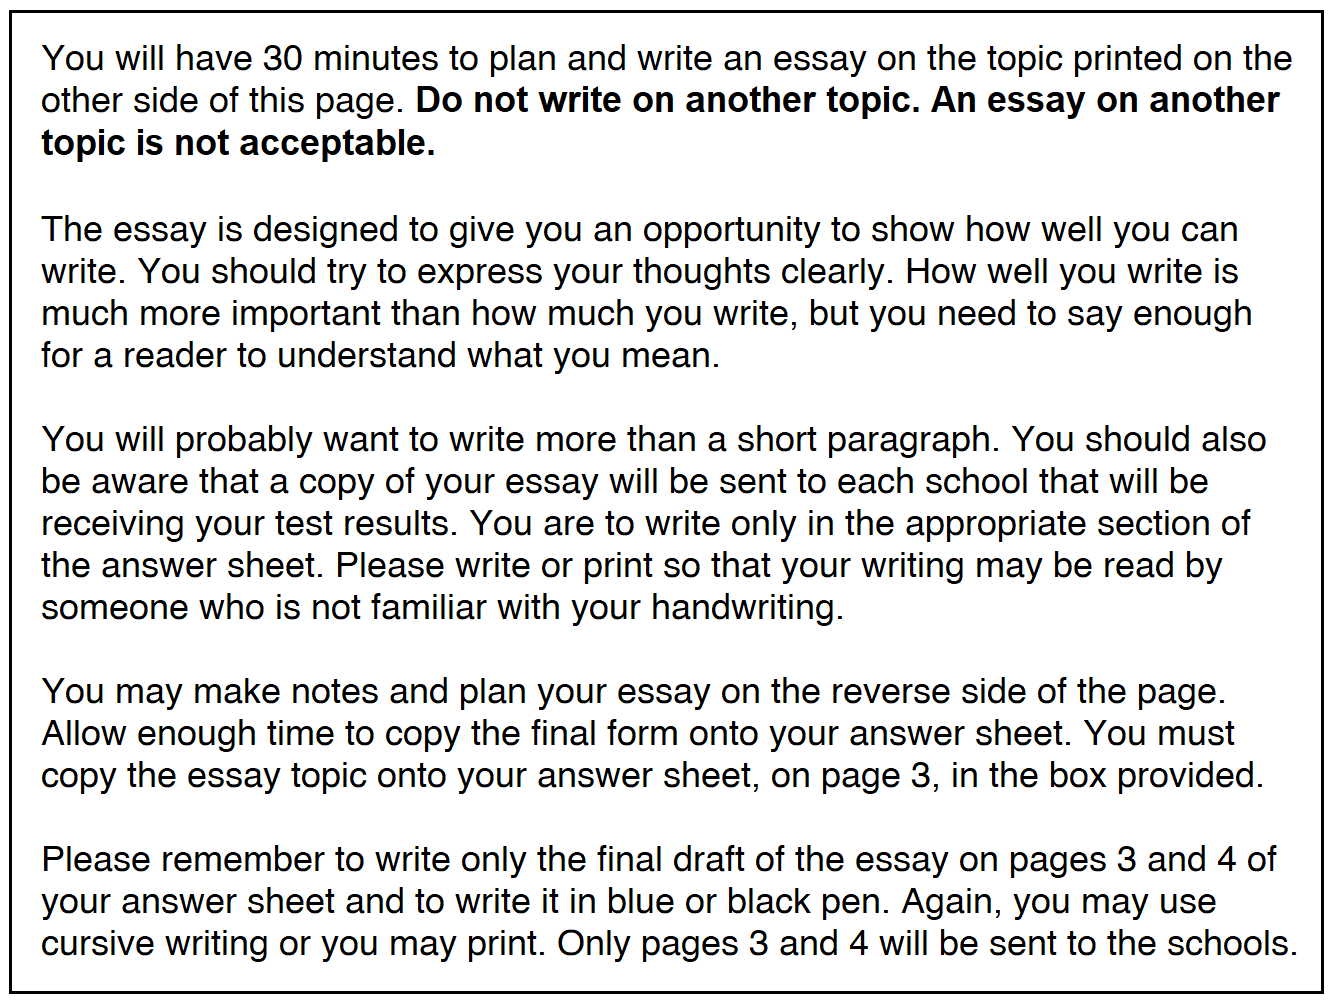 ISEE essay instructions